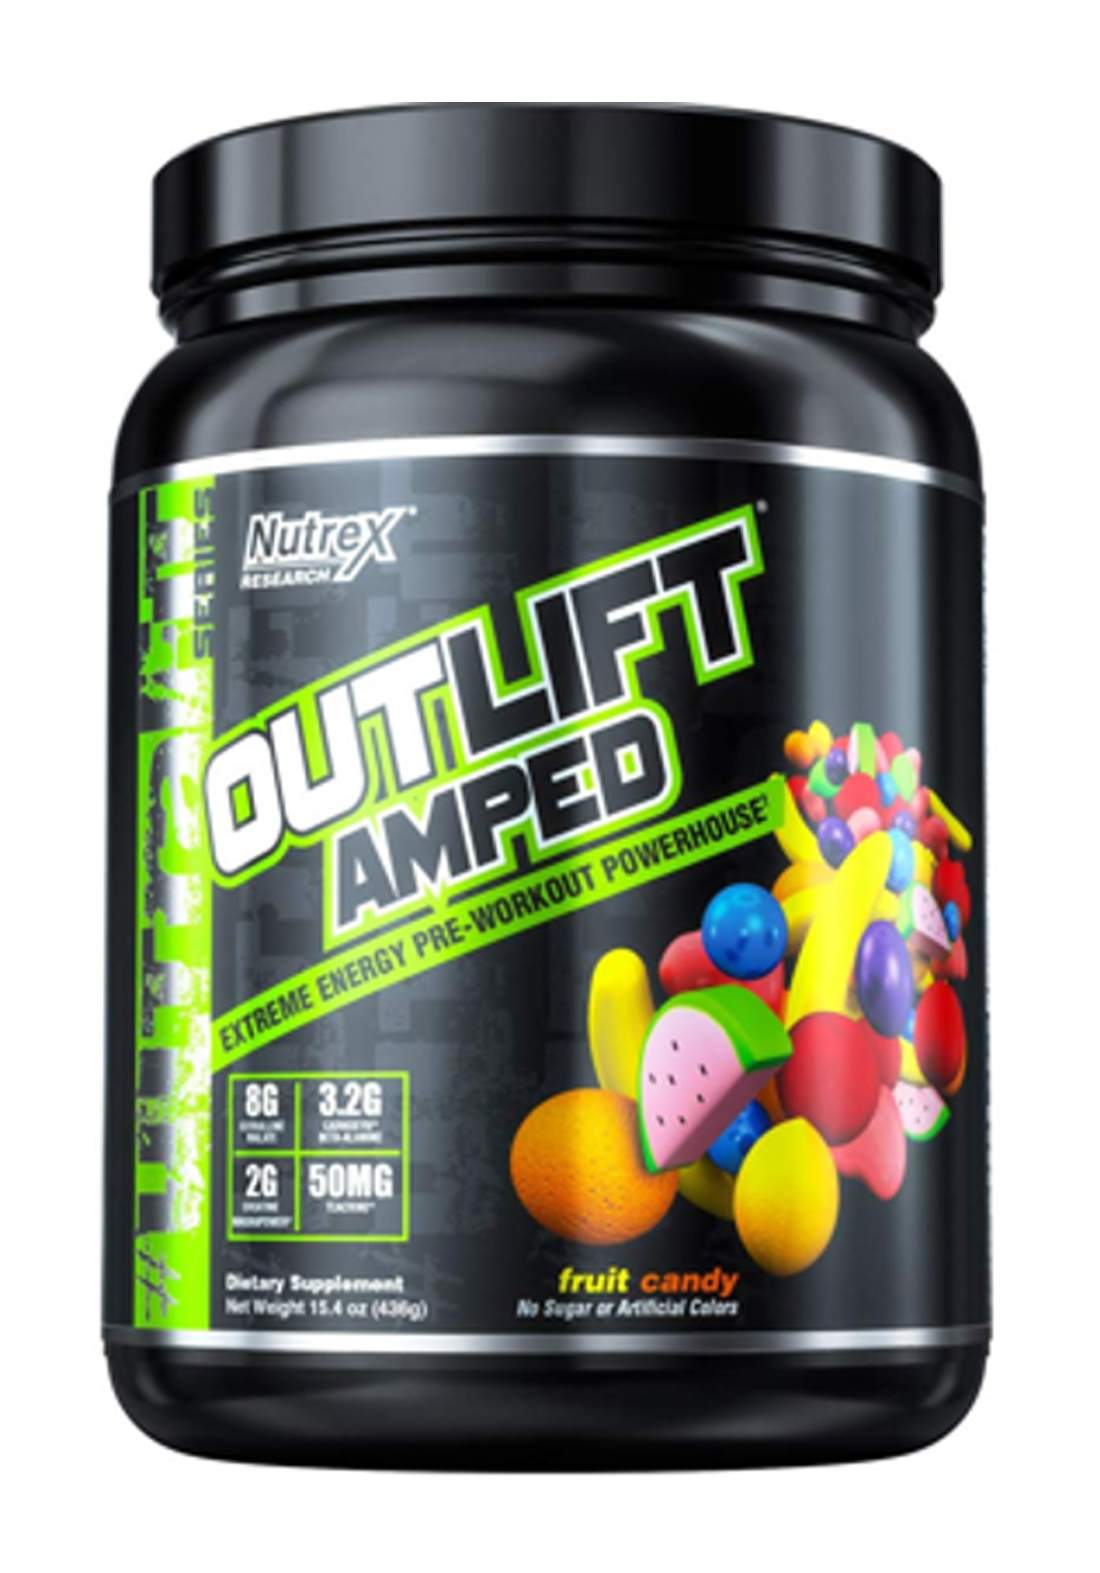 Nutrex Outlift Amped Extreme Energy Pre-Workout Fruit Candy 20 Servings   مكمل غذائي